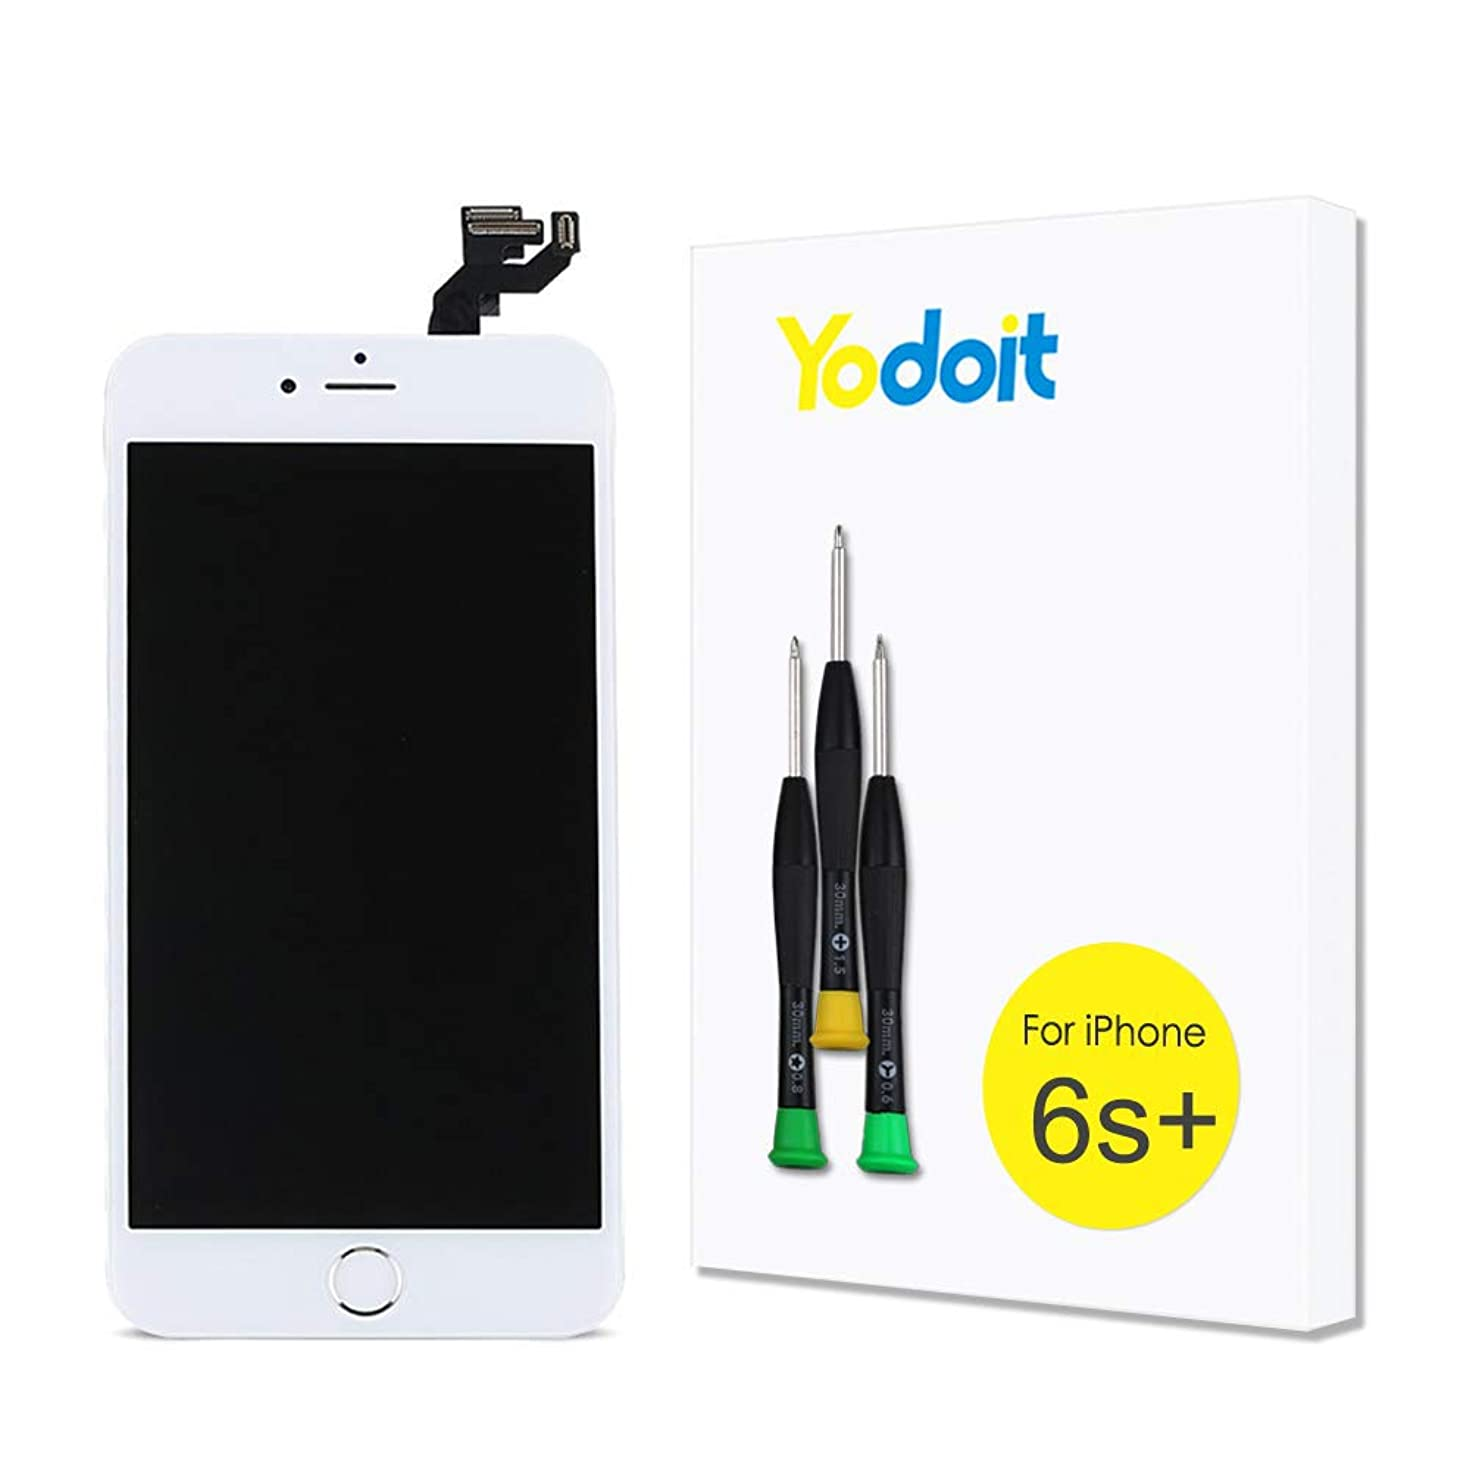 for iPhone 6s Plus Touch Screen Replacement - Yodoit LCD Display Digitizer Glass Full Assembly with Small Parts Camera Proximity Sensor Home Button Earpiece Speaker 3D Touch + Tool (5.5 inches White)